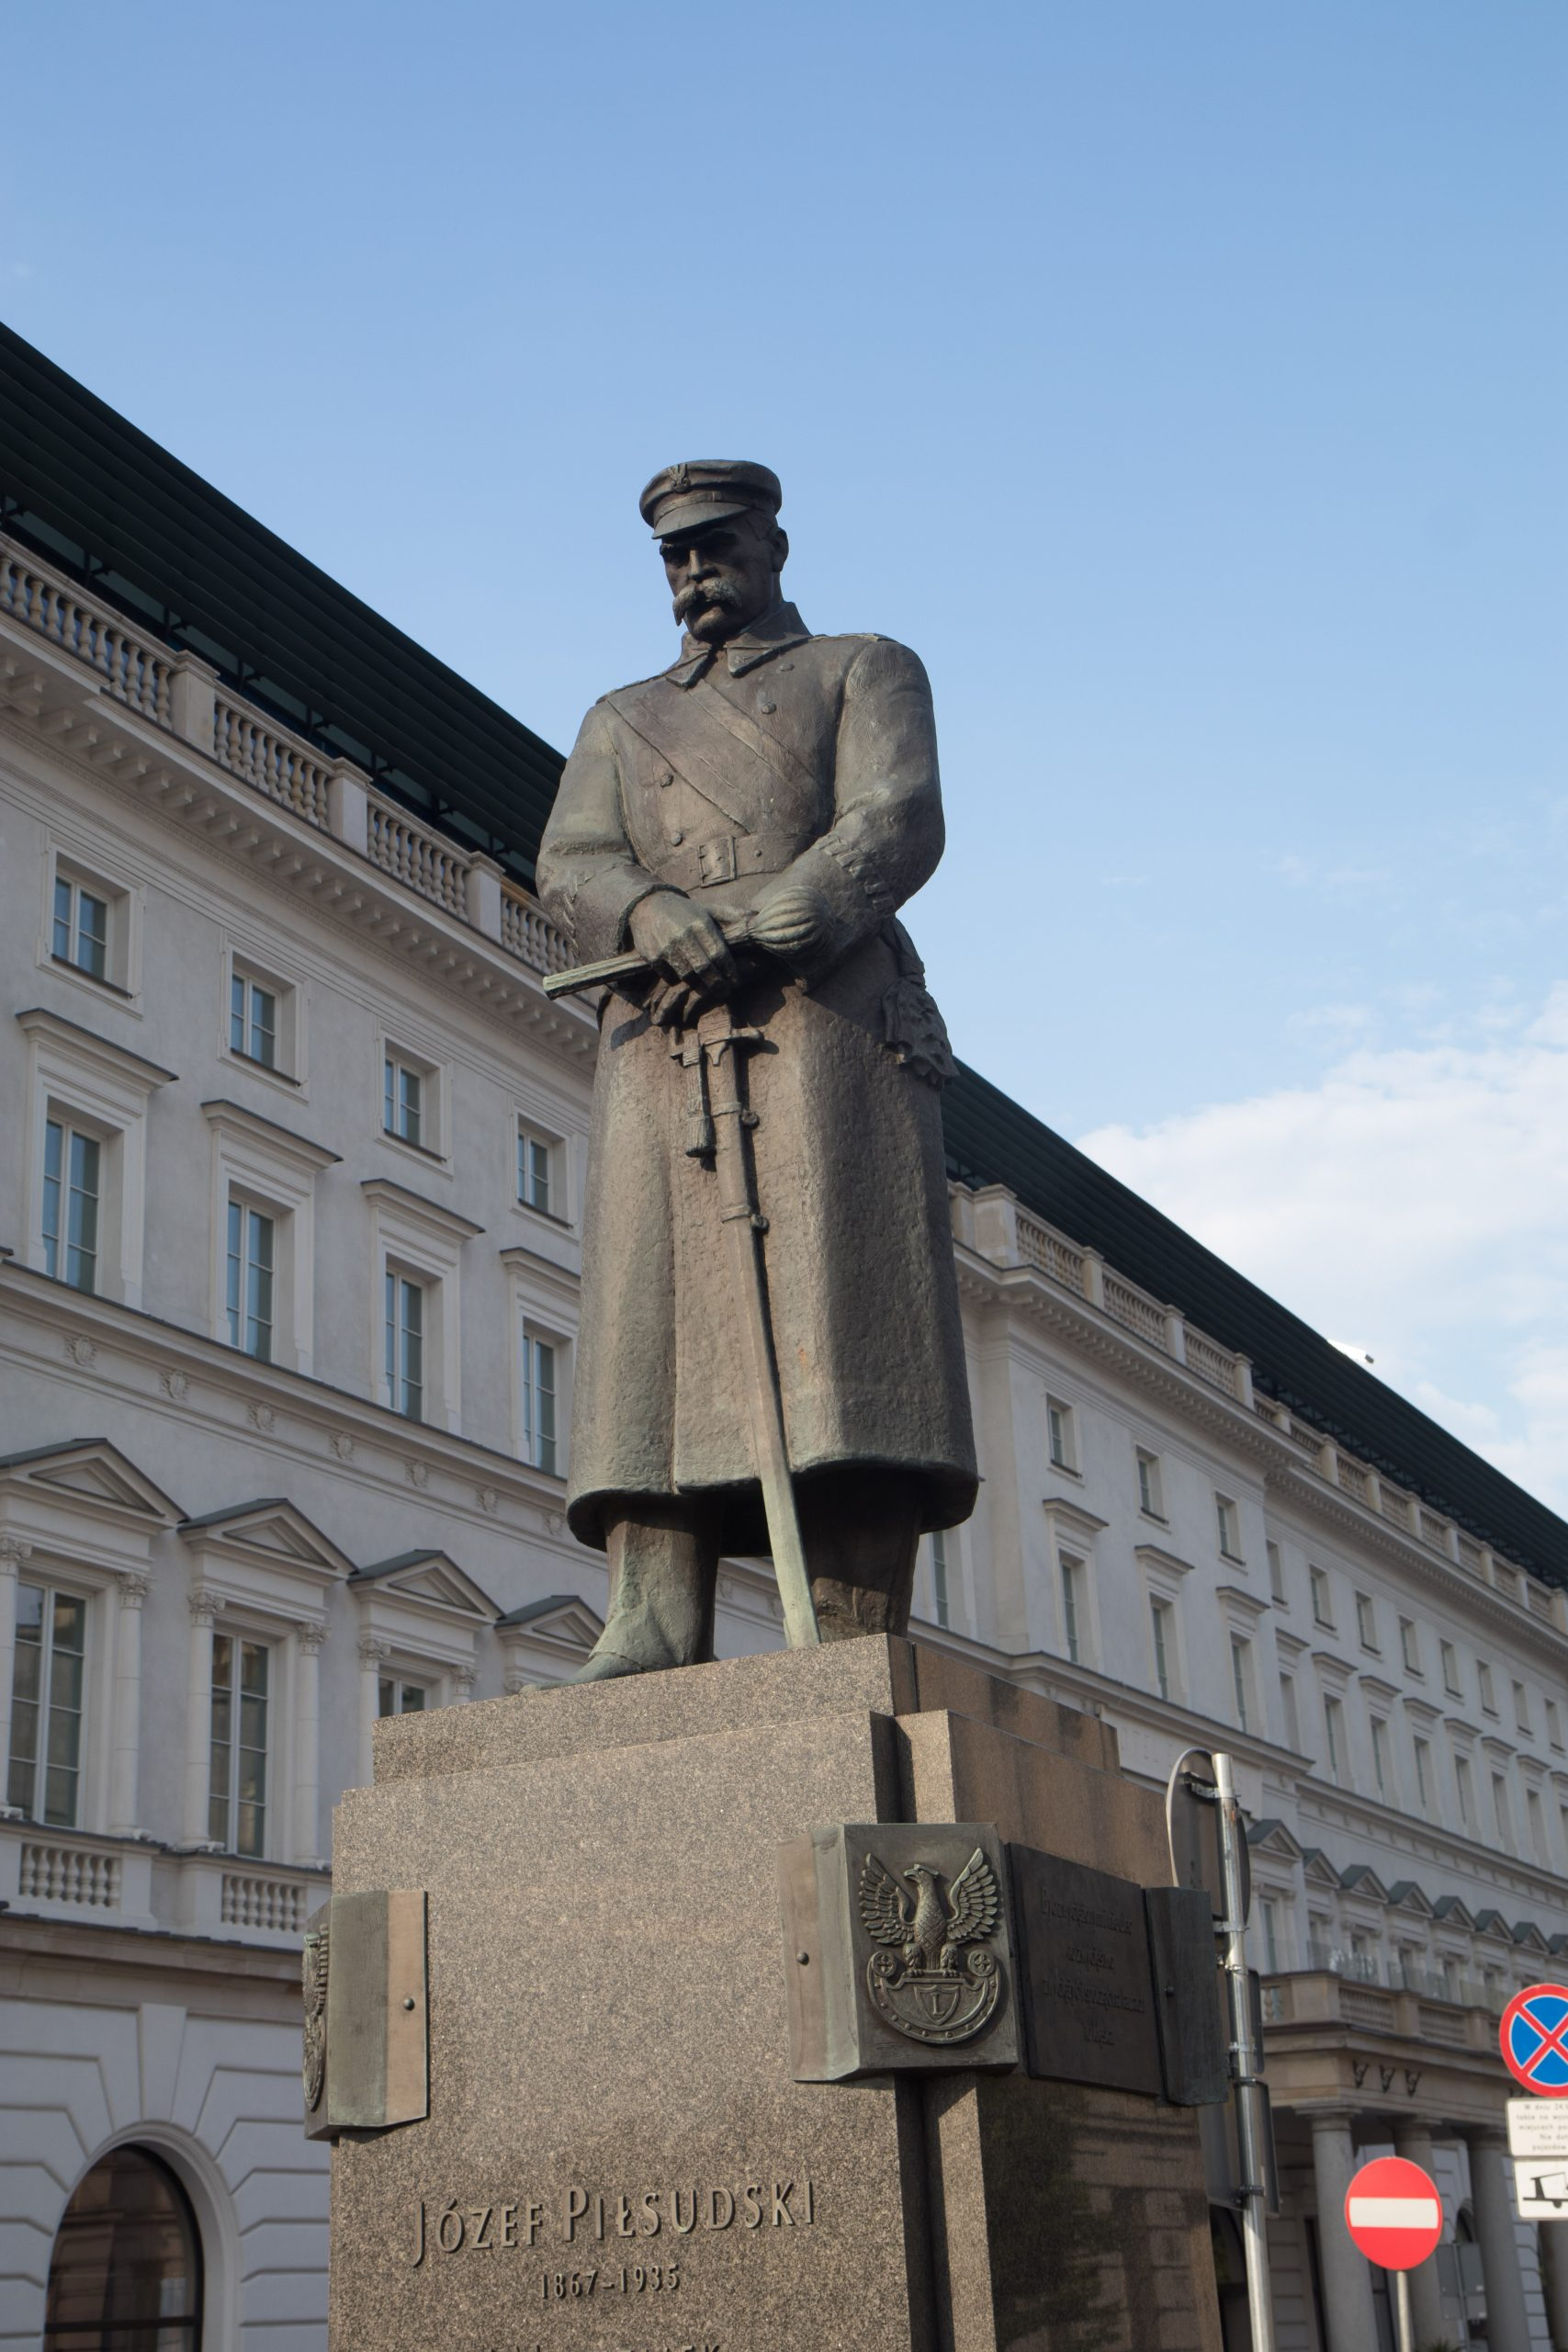 Another statue of a soldier, it may look like Stalin, but it's not.